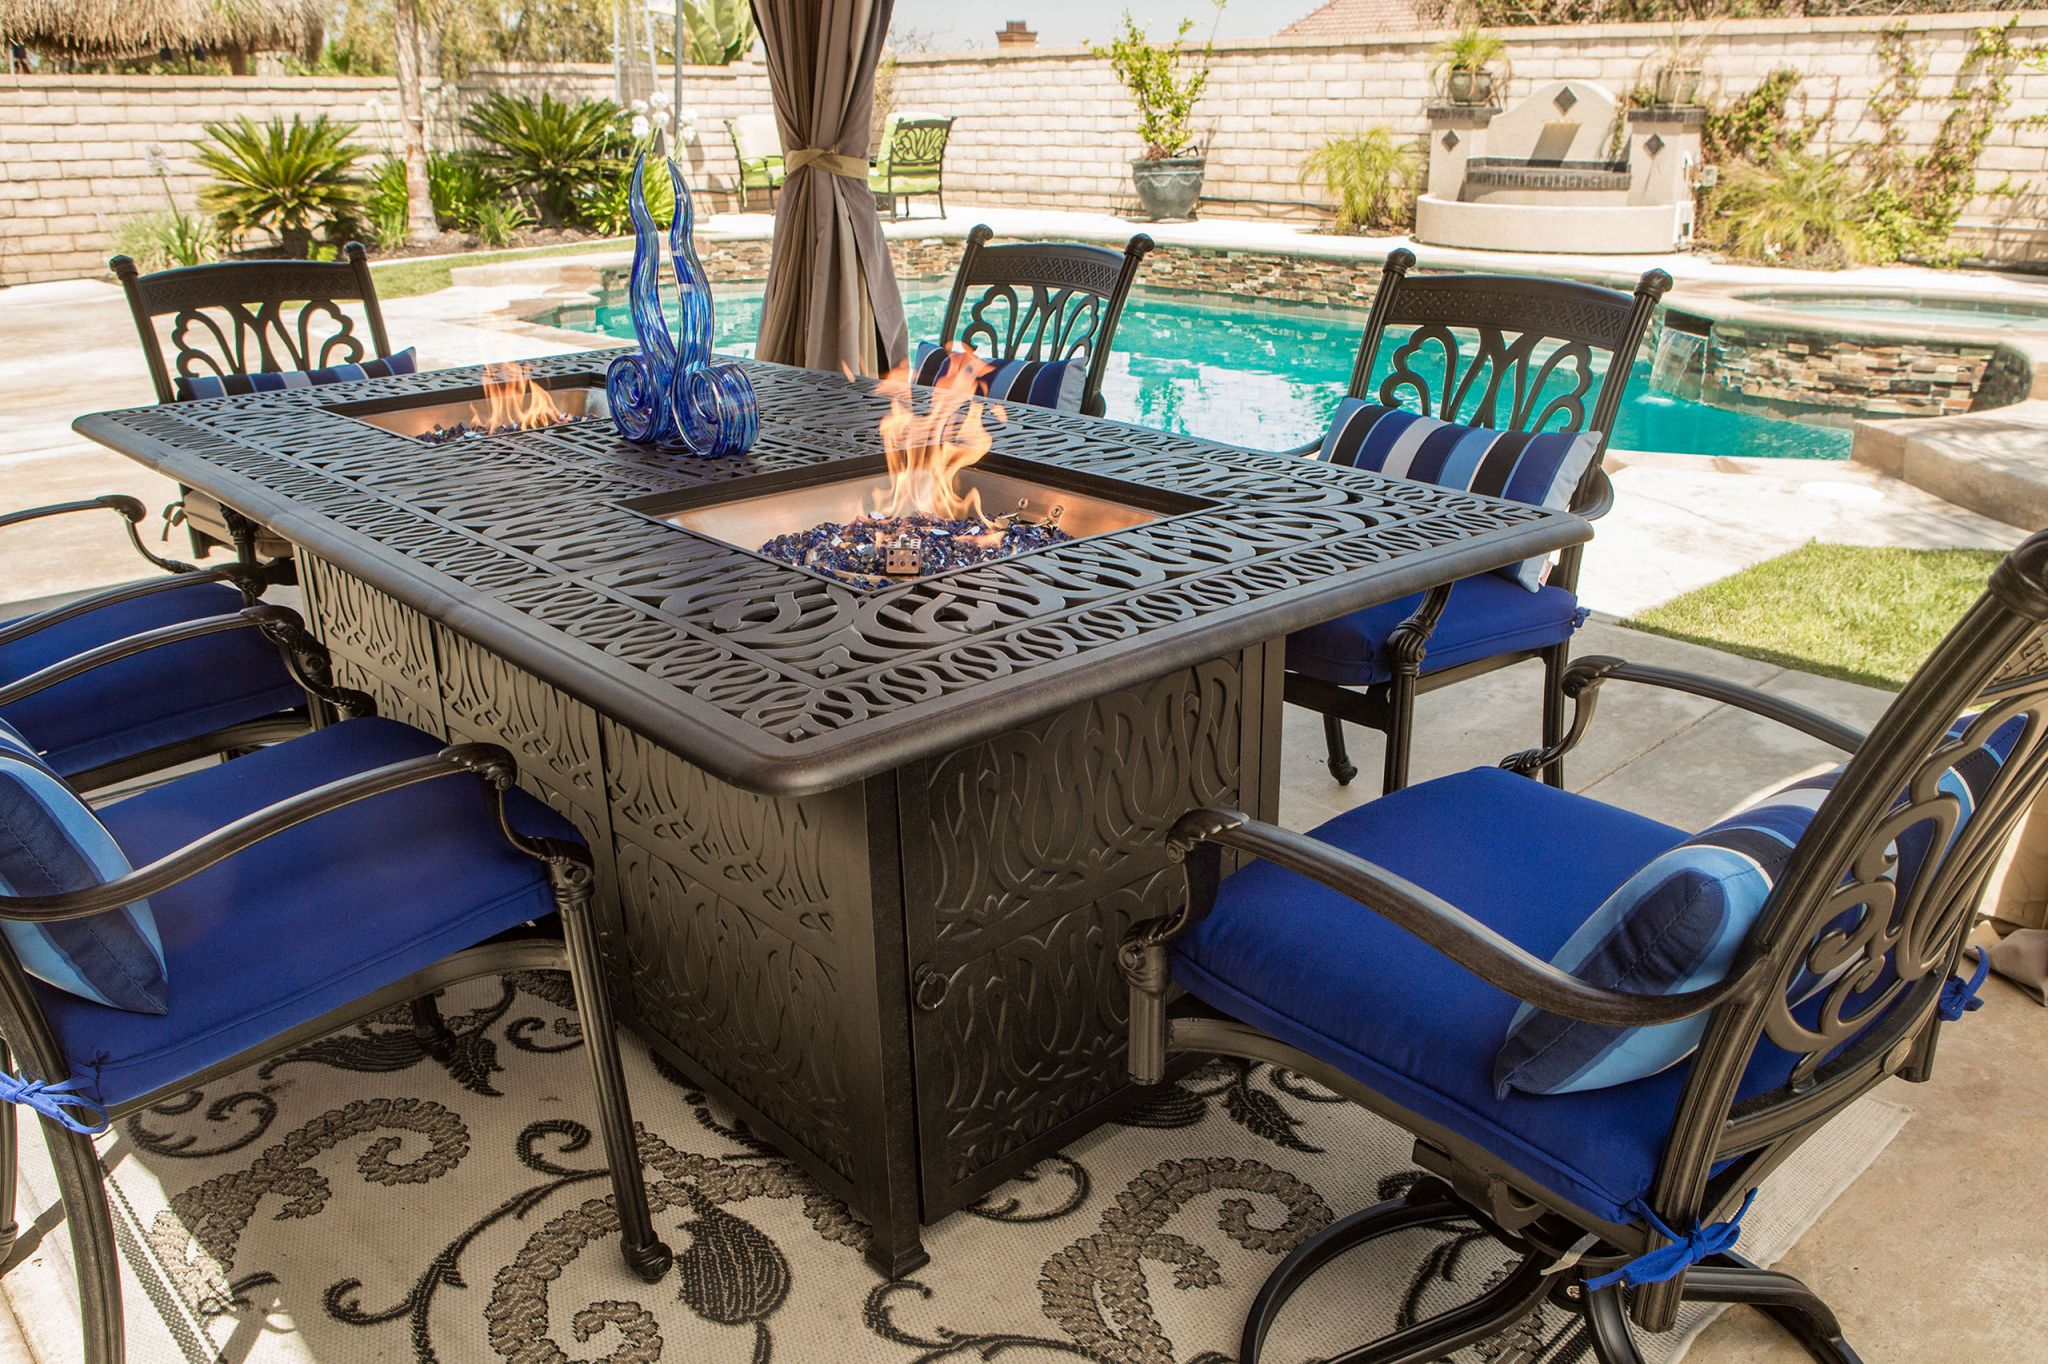 summerset outdoor furniture lowes paint colors interior on lowes paint colors interior id=11181